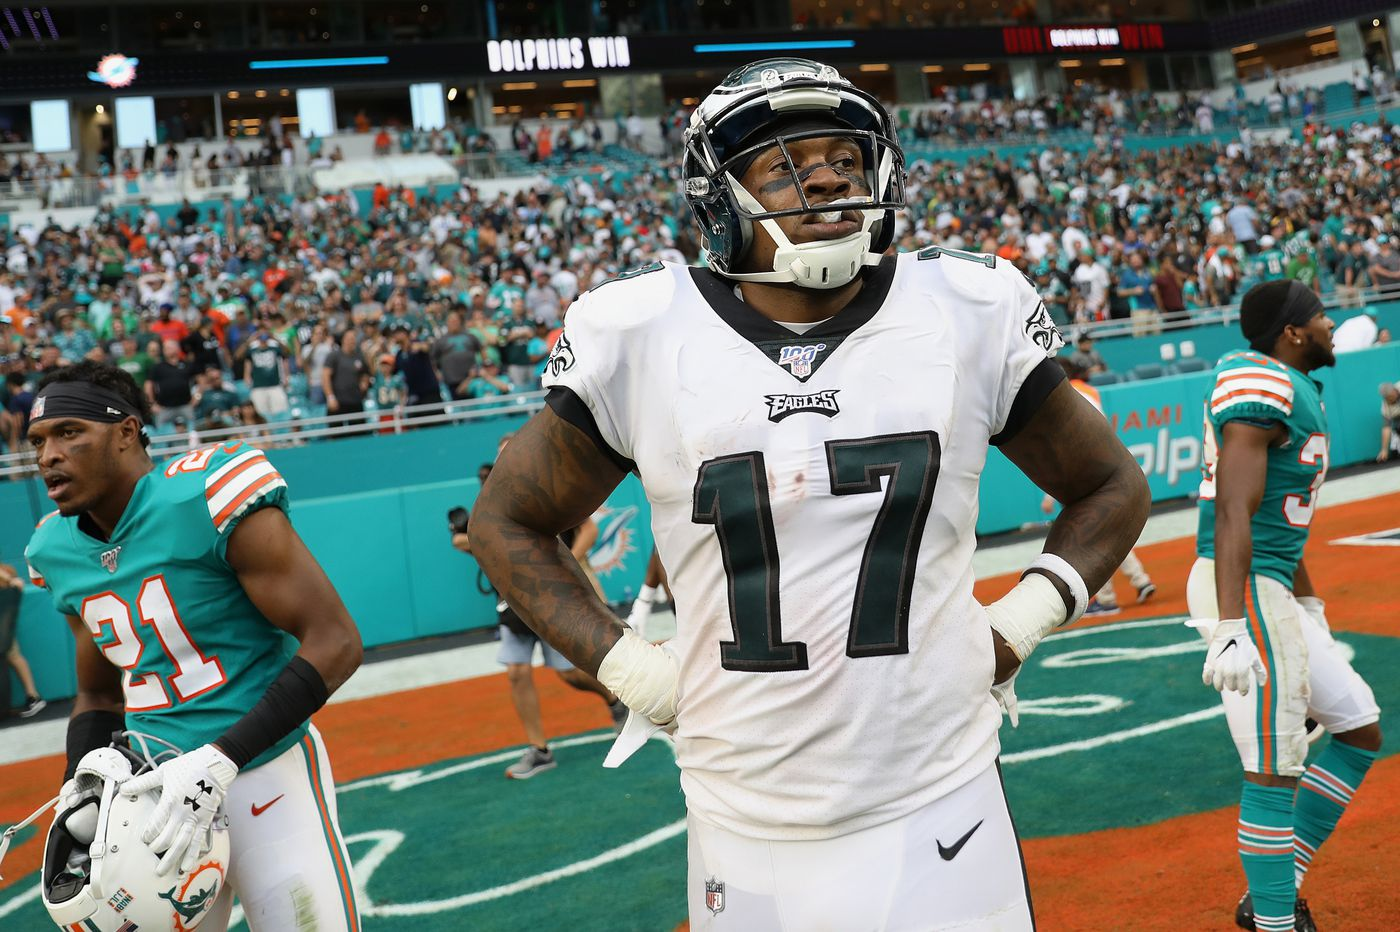 Stunning loss to Dolphins paints stark picture for Eagles' future, both short and long term | David Murphy